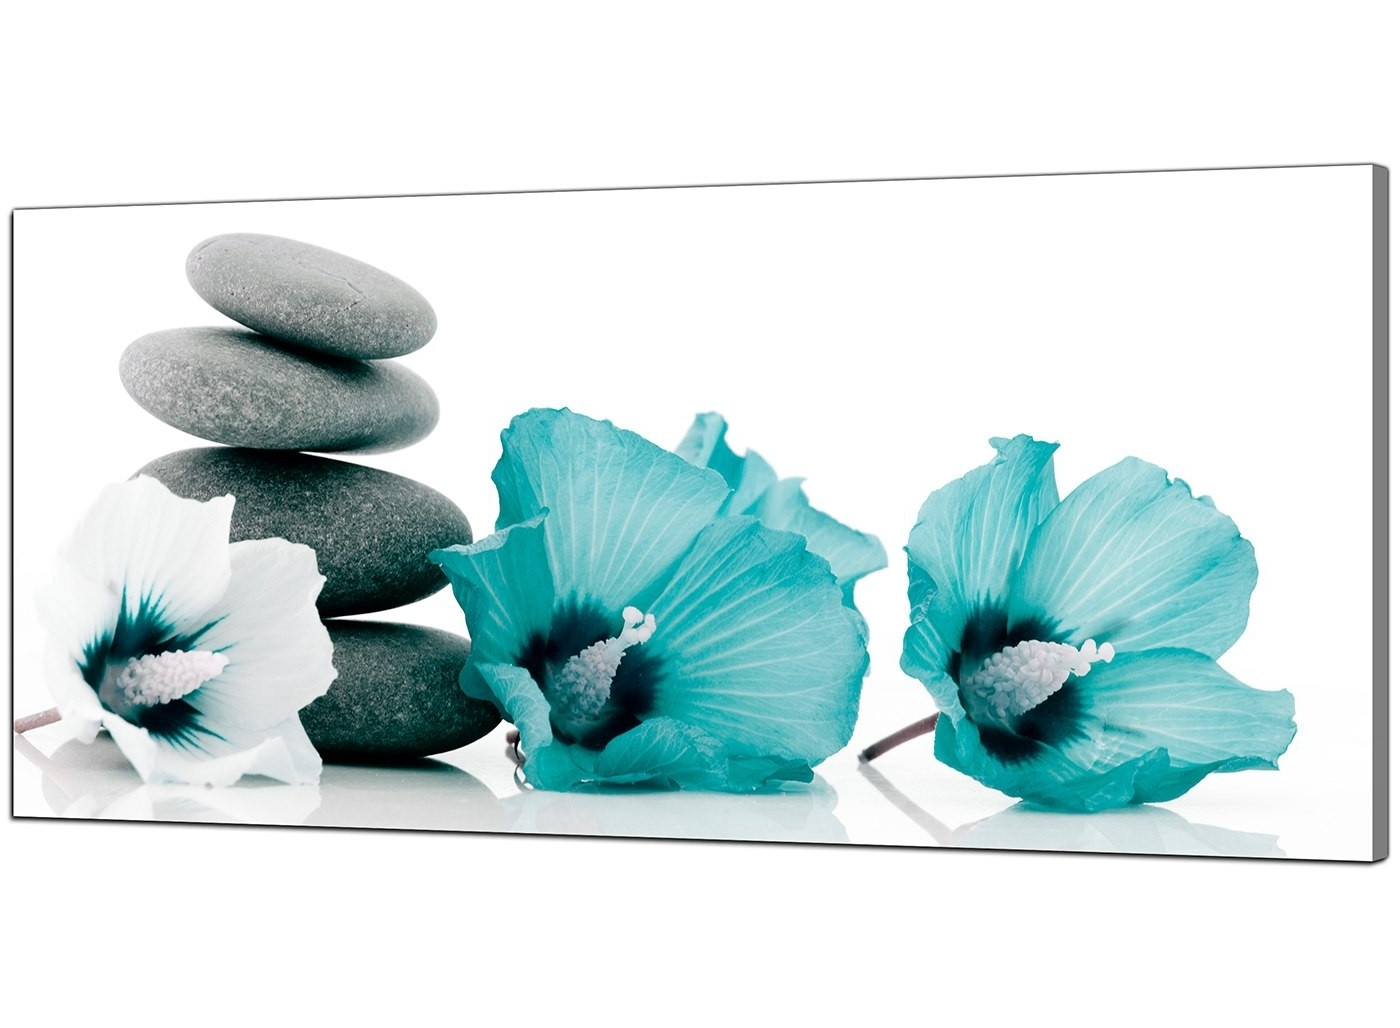 Most Recently Released Large Teal And Grey Canvas Pictures Of Flowers And Pebbles Inside Teal Wall Art (View 3 of 15)